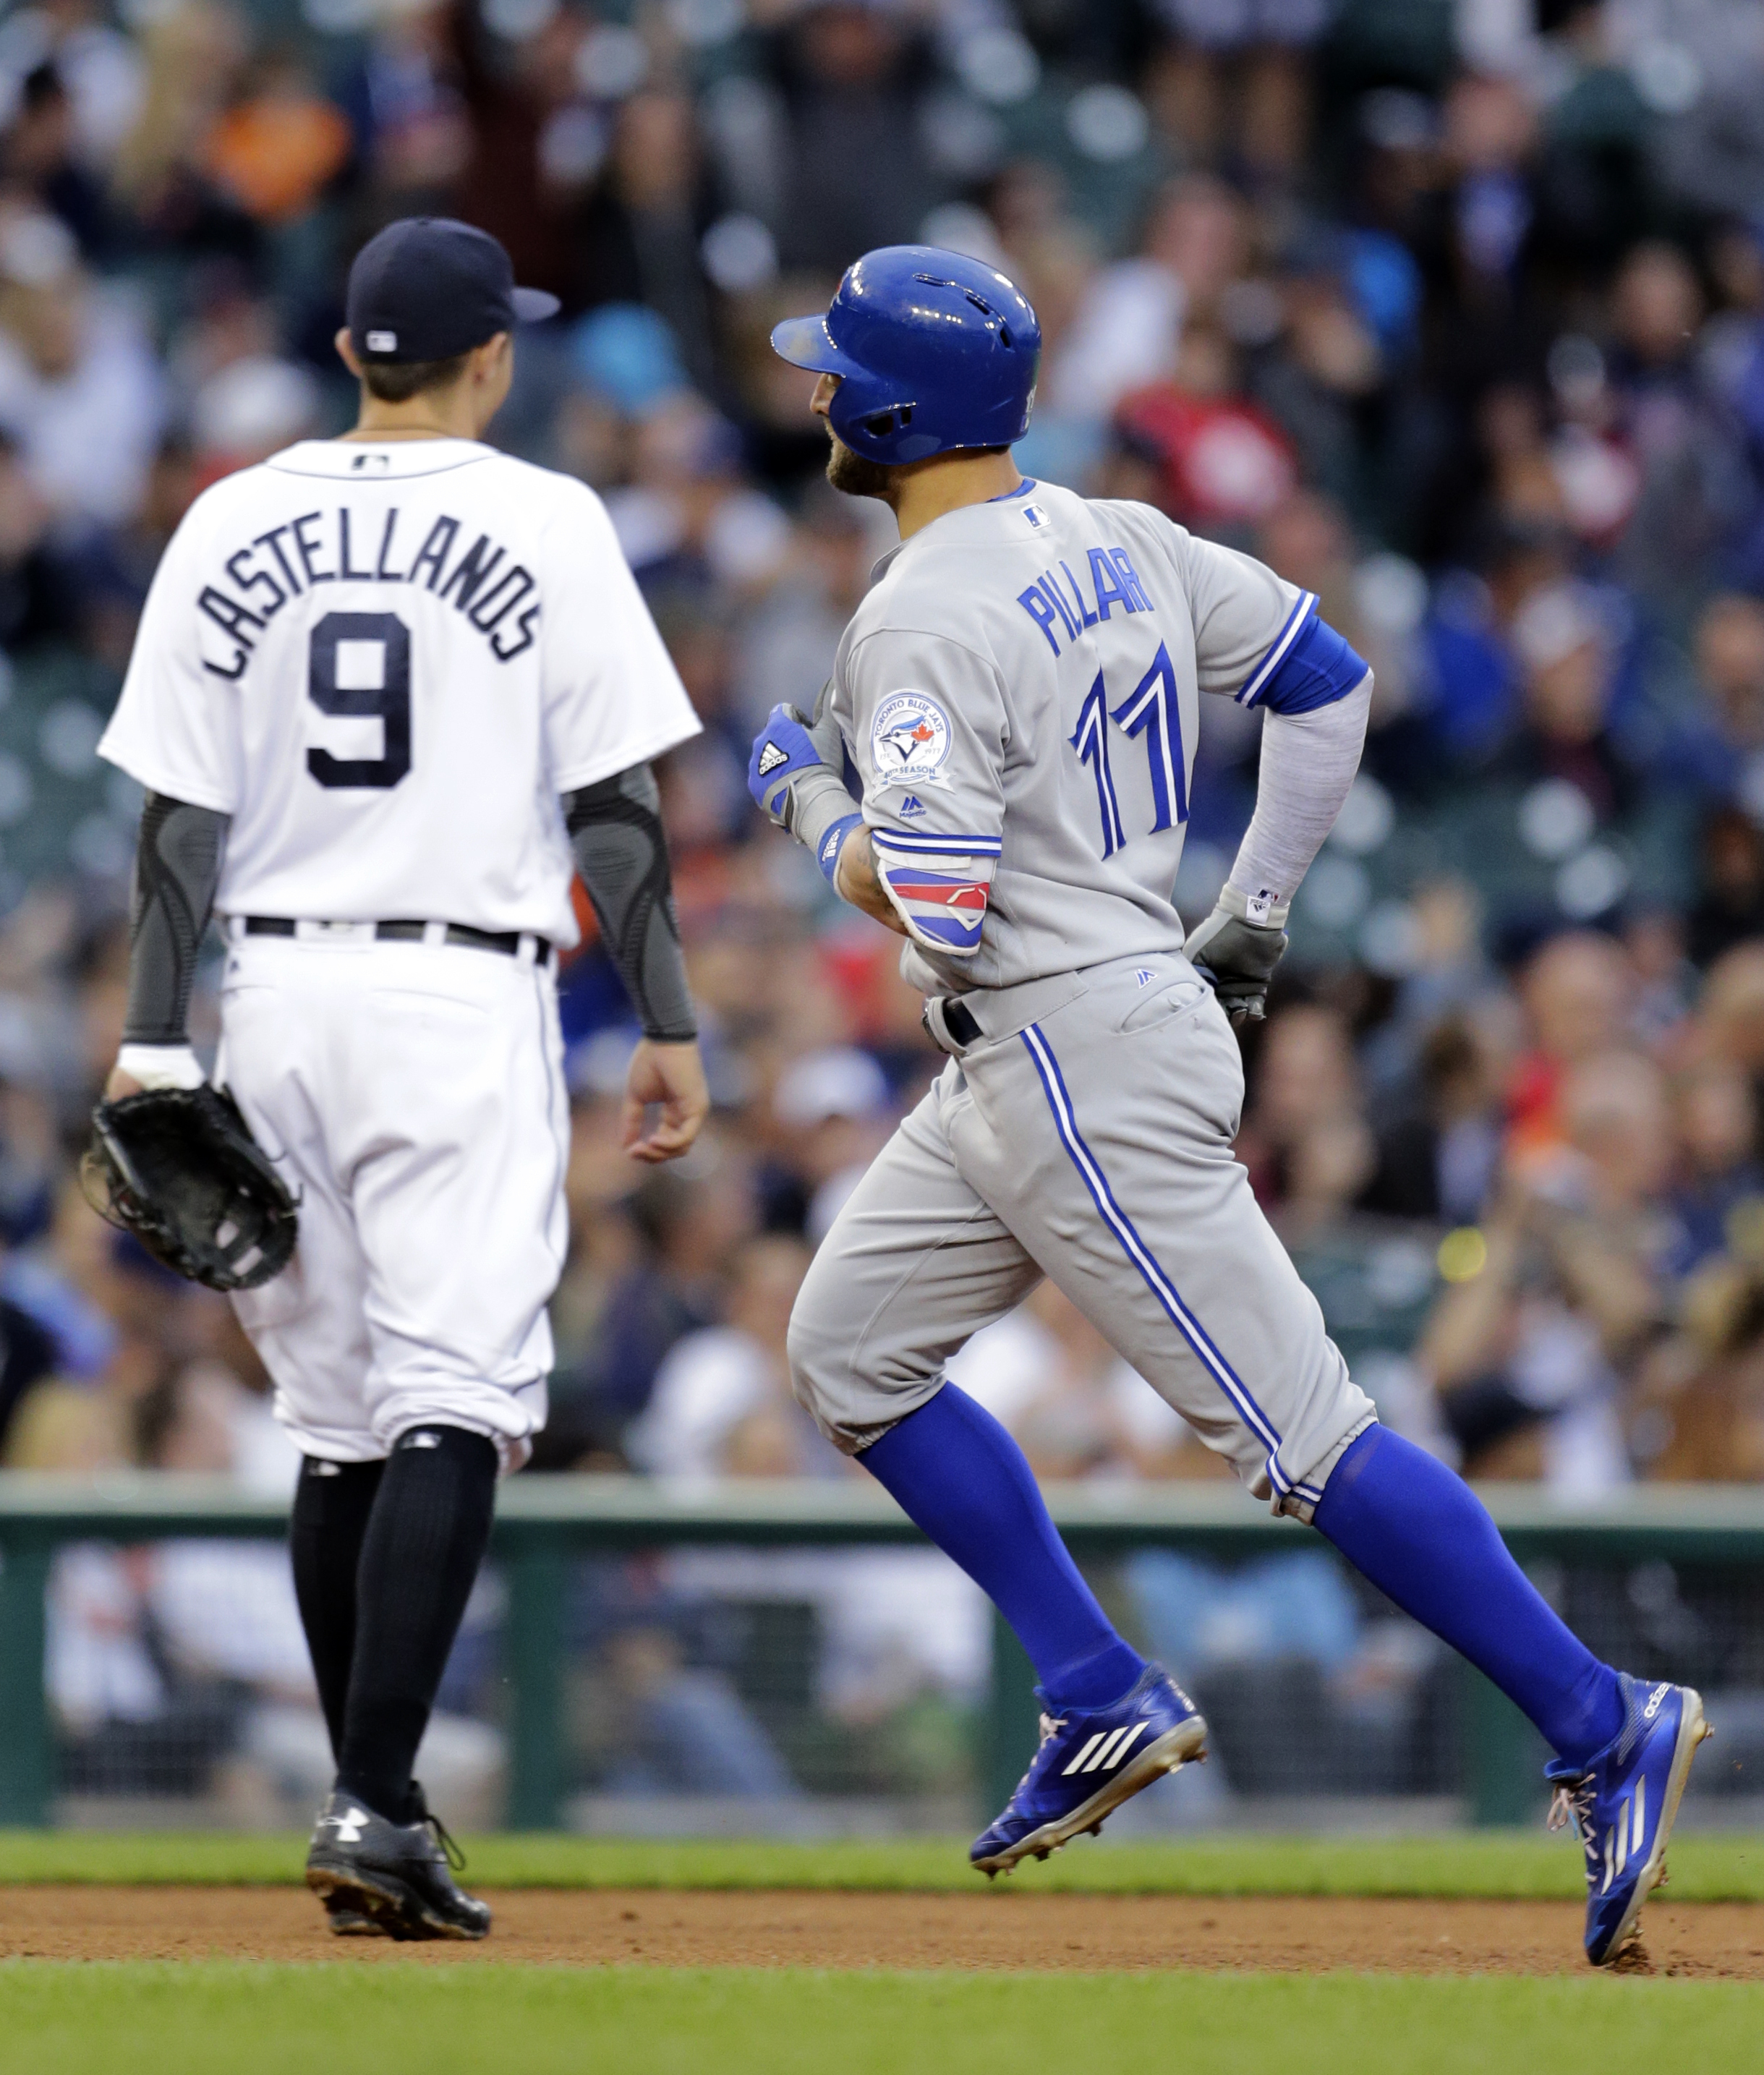 Toronto Blue Jays' Kevin Pillar (11) rounds the bases past Detroit Tigers third baseman Nick Castellanos after hitting a solo home run during the fifth inning of a baseball game Tuesday, June 7, 2016, in Detroit. (AP Photo/Duane Burleson)